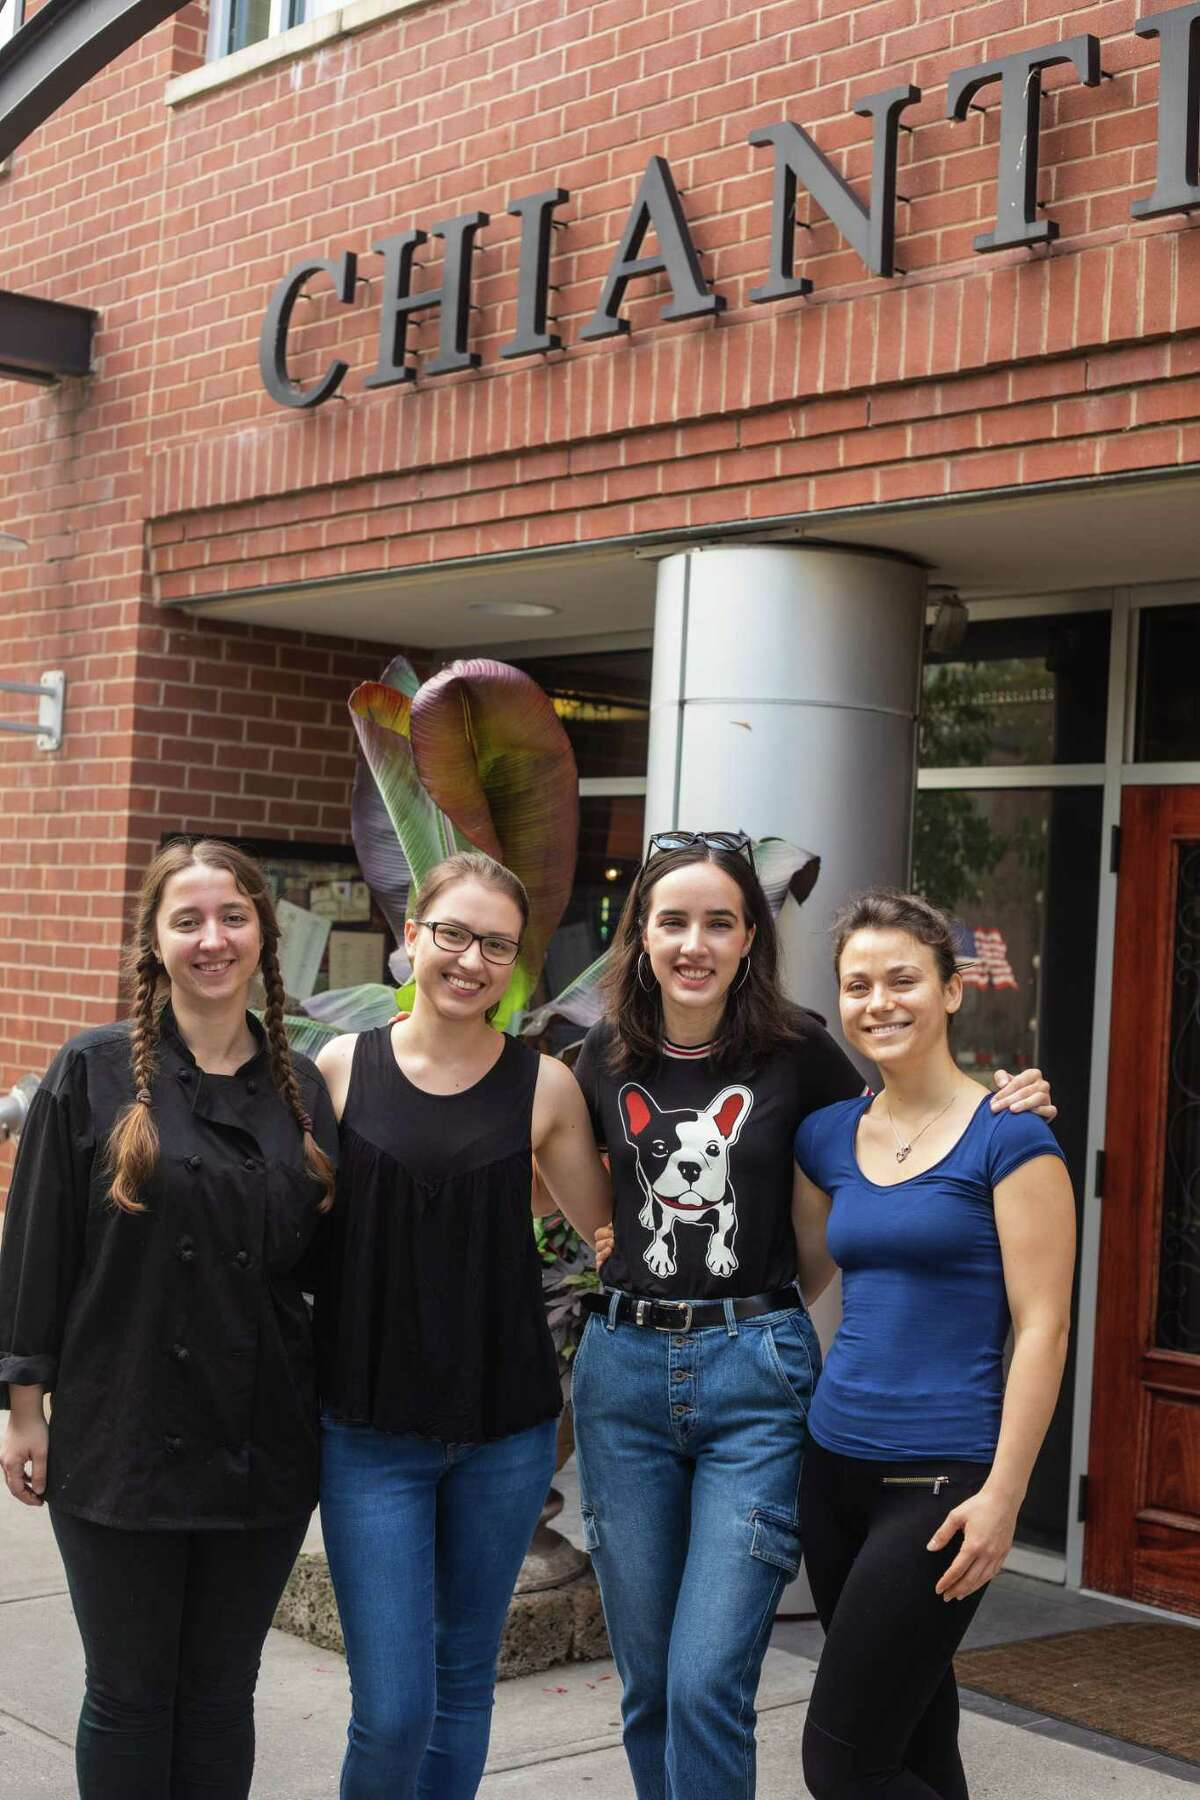 From left, Svitlana Zahorulko, Olga Wyczulkowska, Gabriela Pazdur and Angelika Wloch in front Chianti restaurant in Saratoga Springs. The women are among seven employees, all from Poland, that Chianti's parent company, DZ Restaurants, brought over for the summer to address a labor shortage.